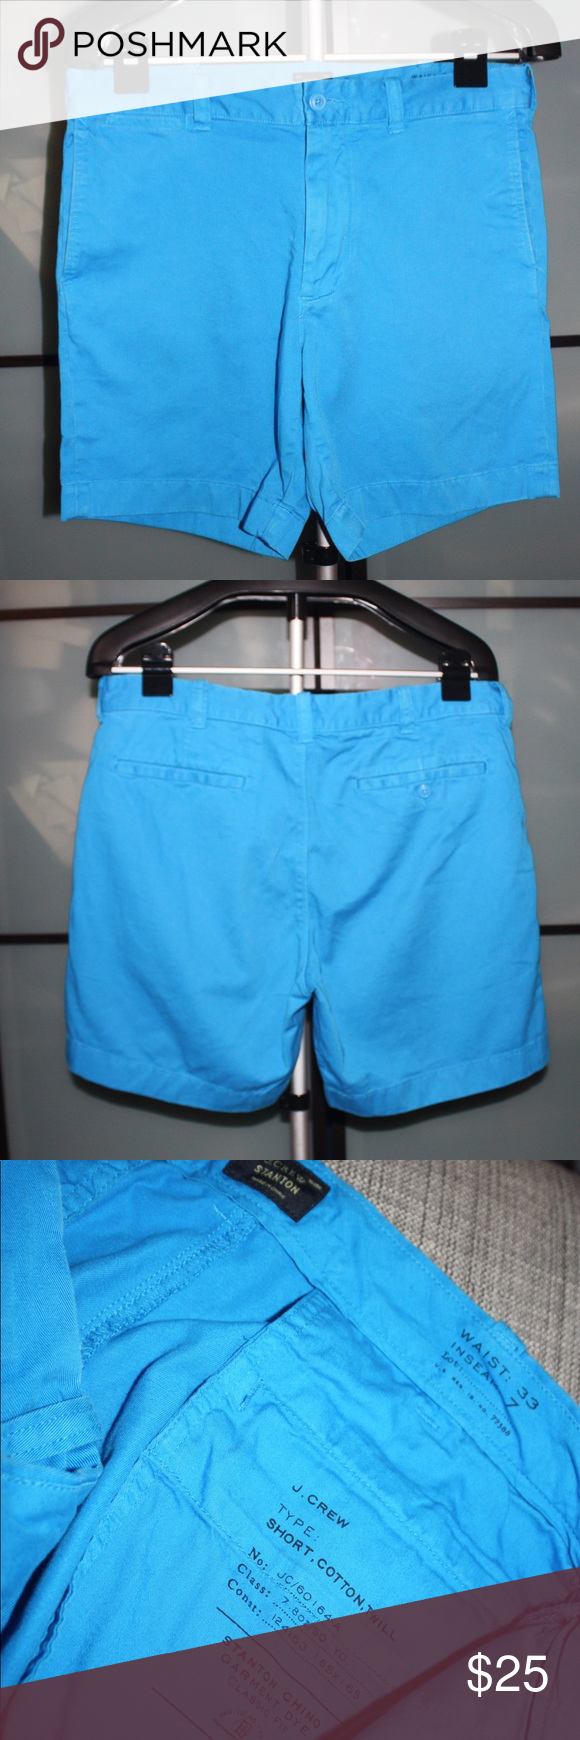 Jcrew Garment wash 7 inch shorts These are a pair of Jcrew Garment wash 7 inch shorts. They are a really pretty blue and have a garment wash finish which makes them look like you're favorite worn in pair of shorts. 7 inch inseam makes them the perfect length. No holes or stains. Just the broken in look from the dying of the shorts. Super comfy! J. Crew Shorts Flat Front